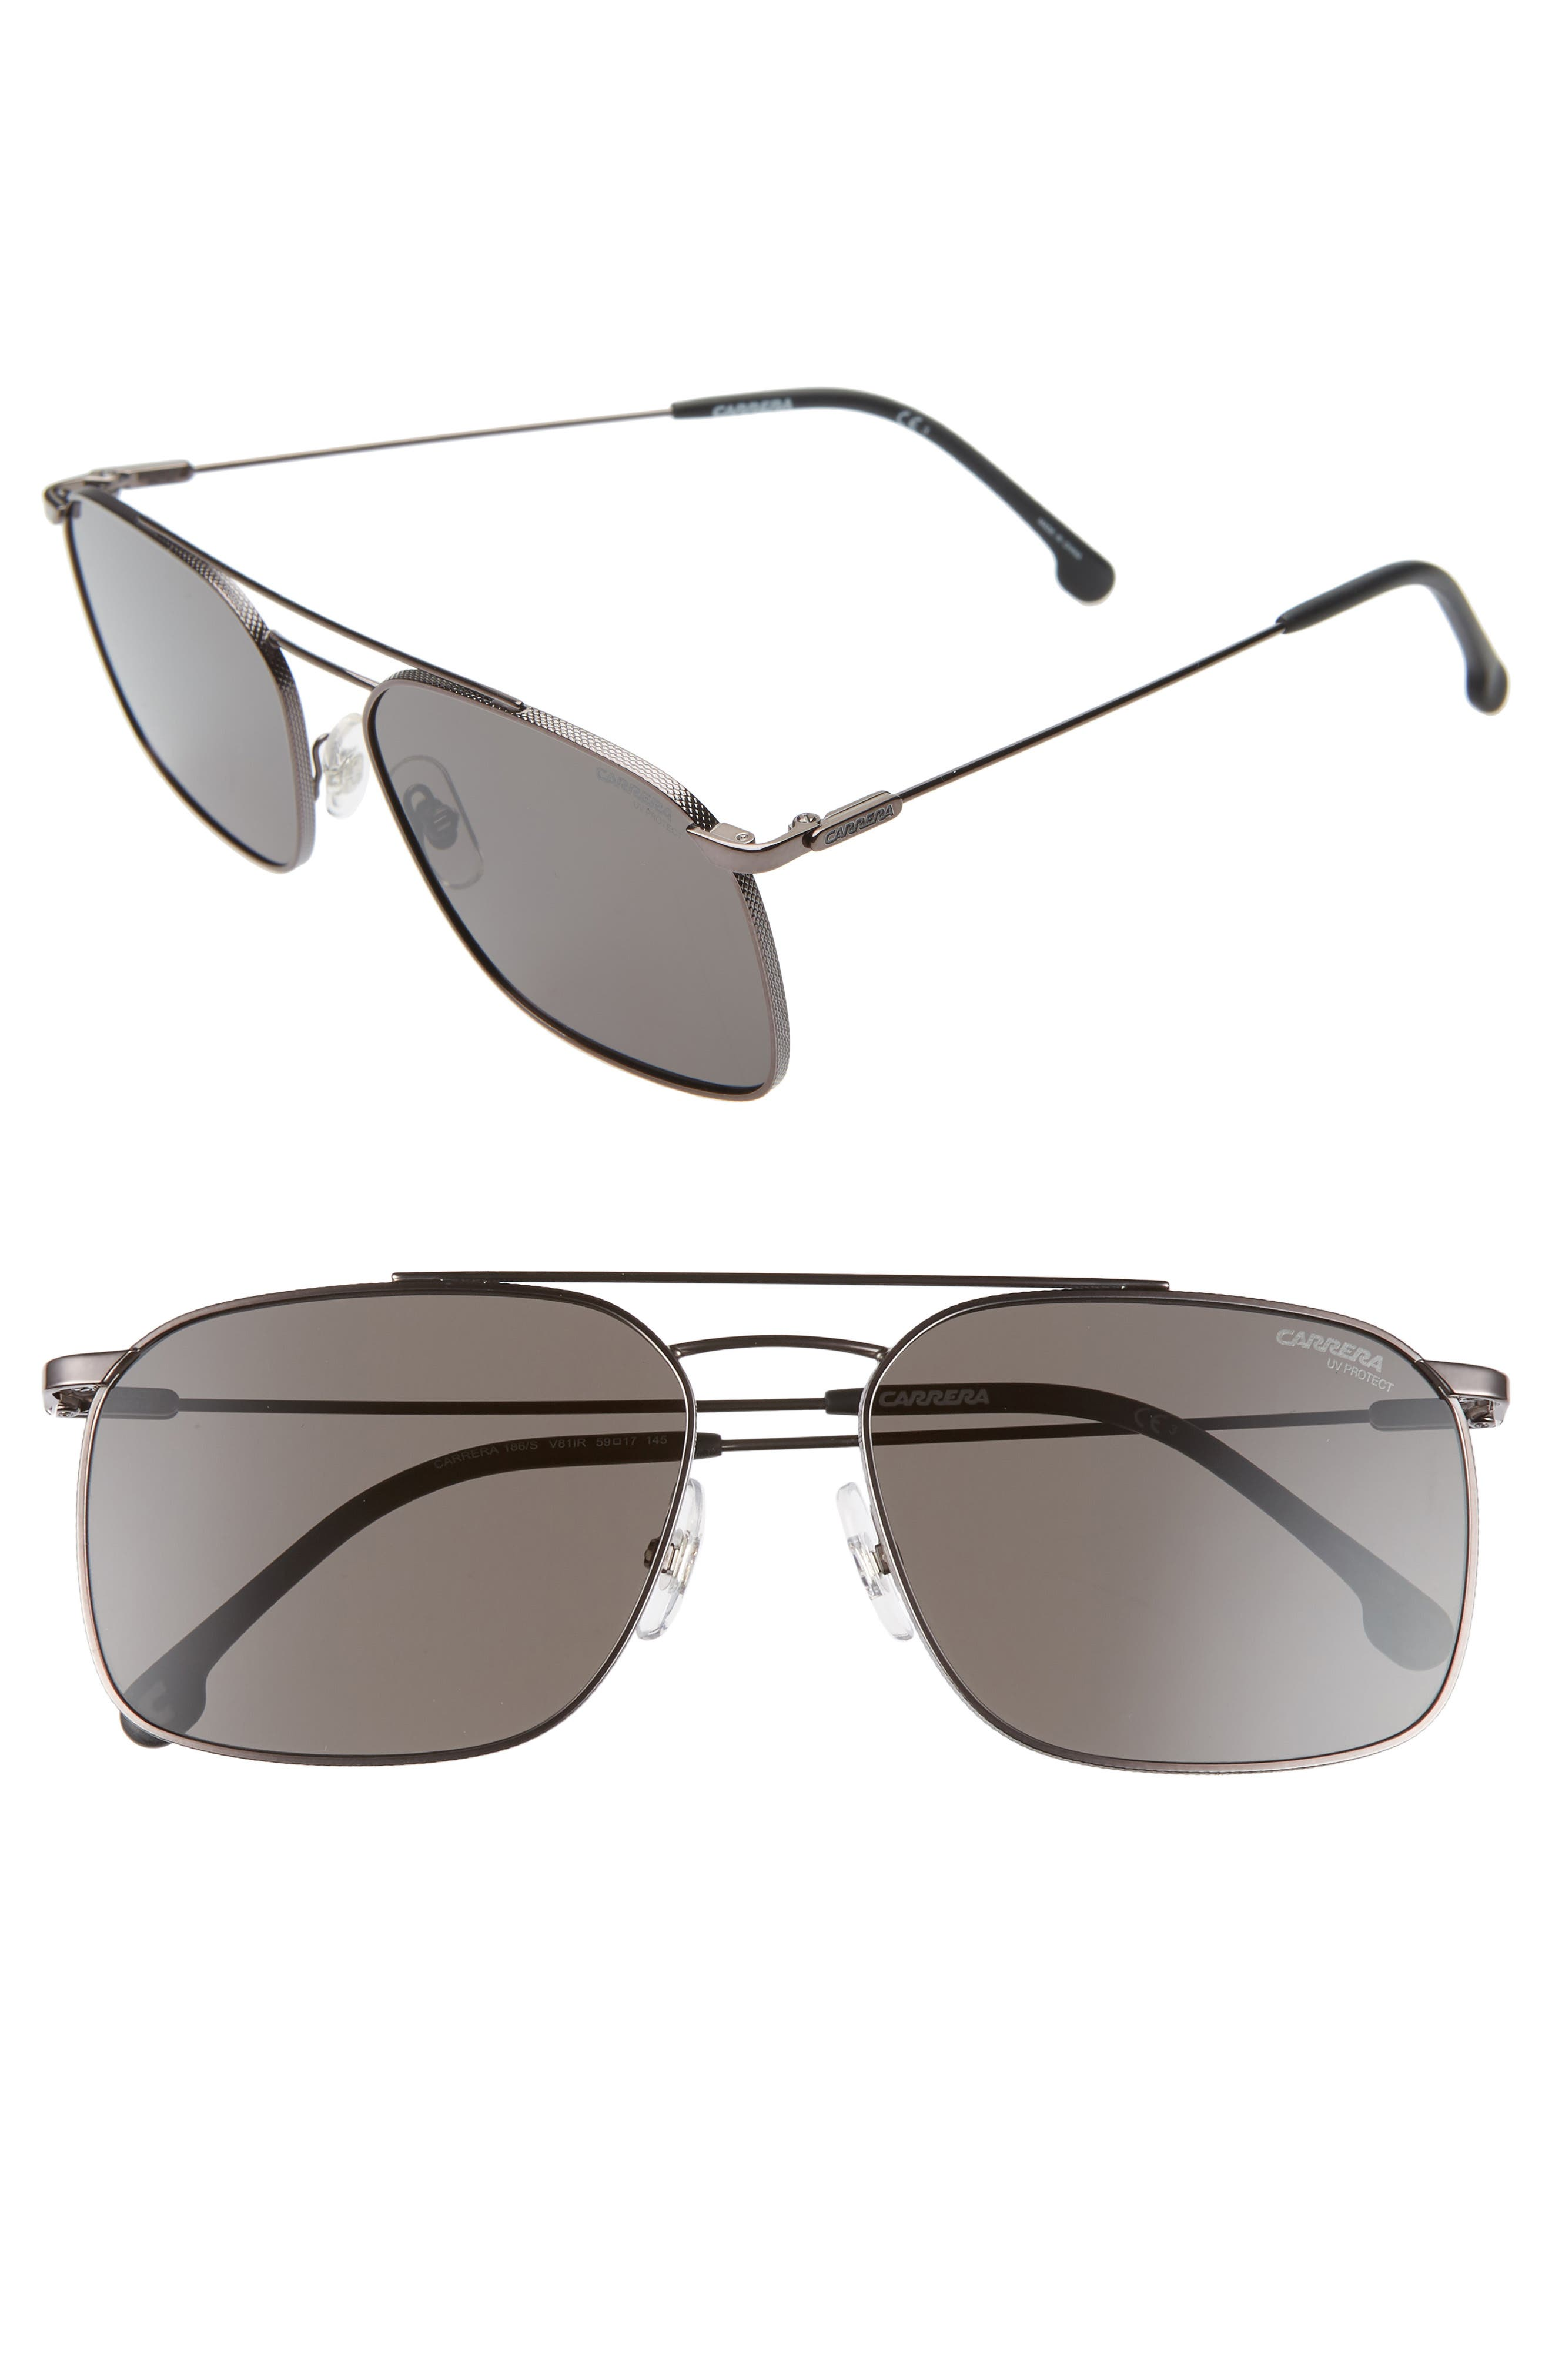 Carrera Eyewear 5m Aviator Sunglasses - Dark Ruthenium Black